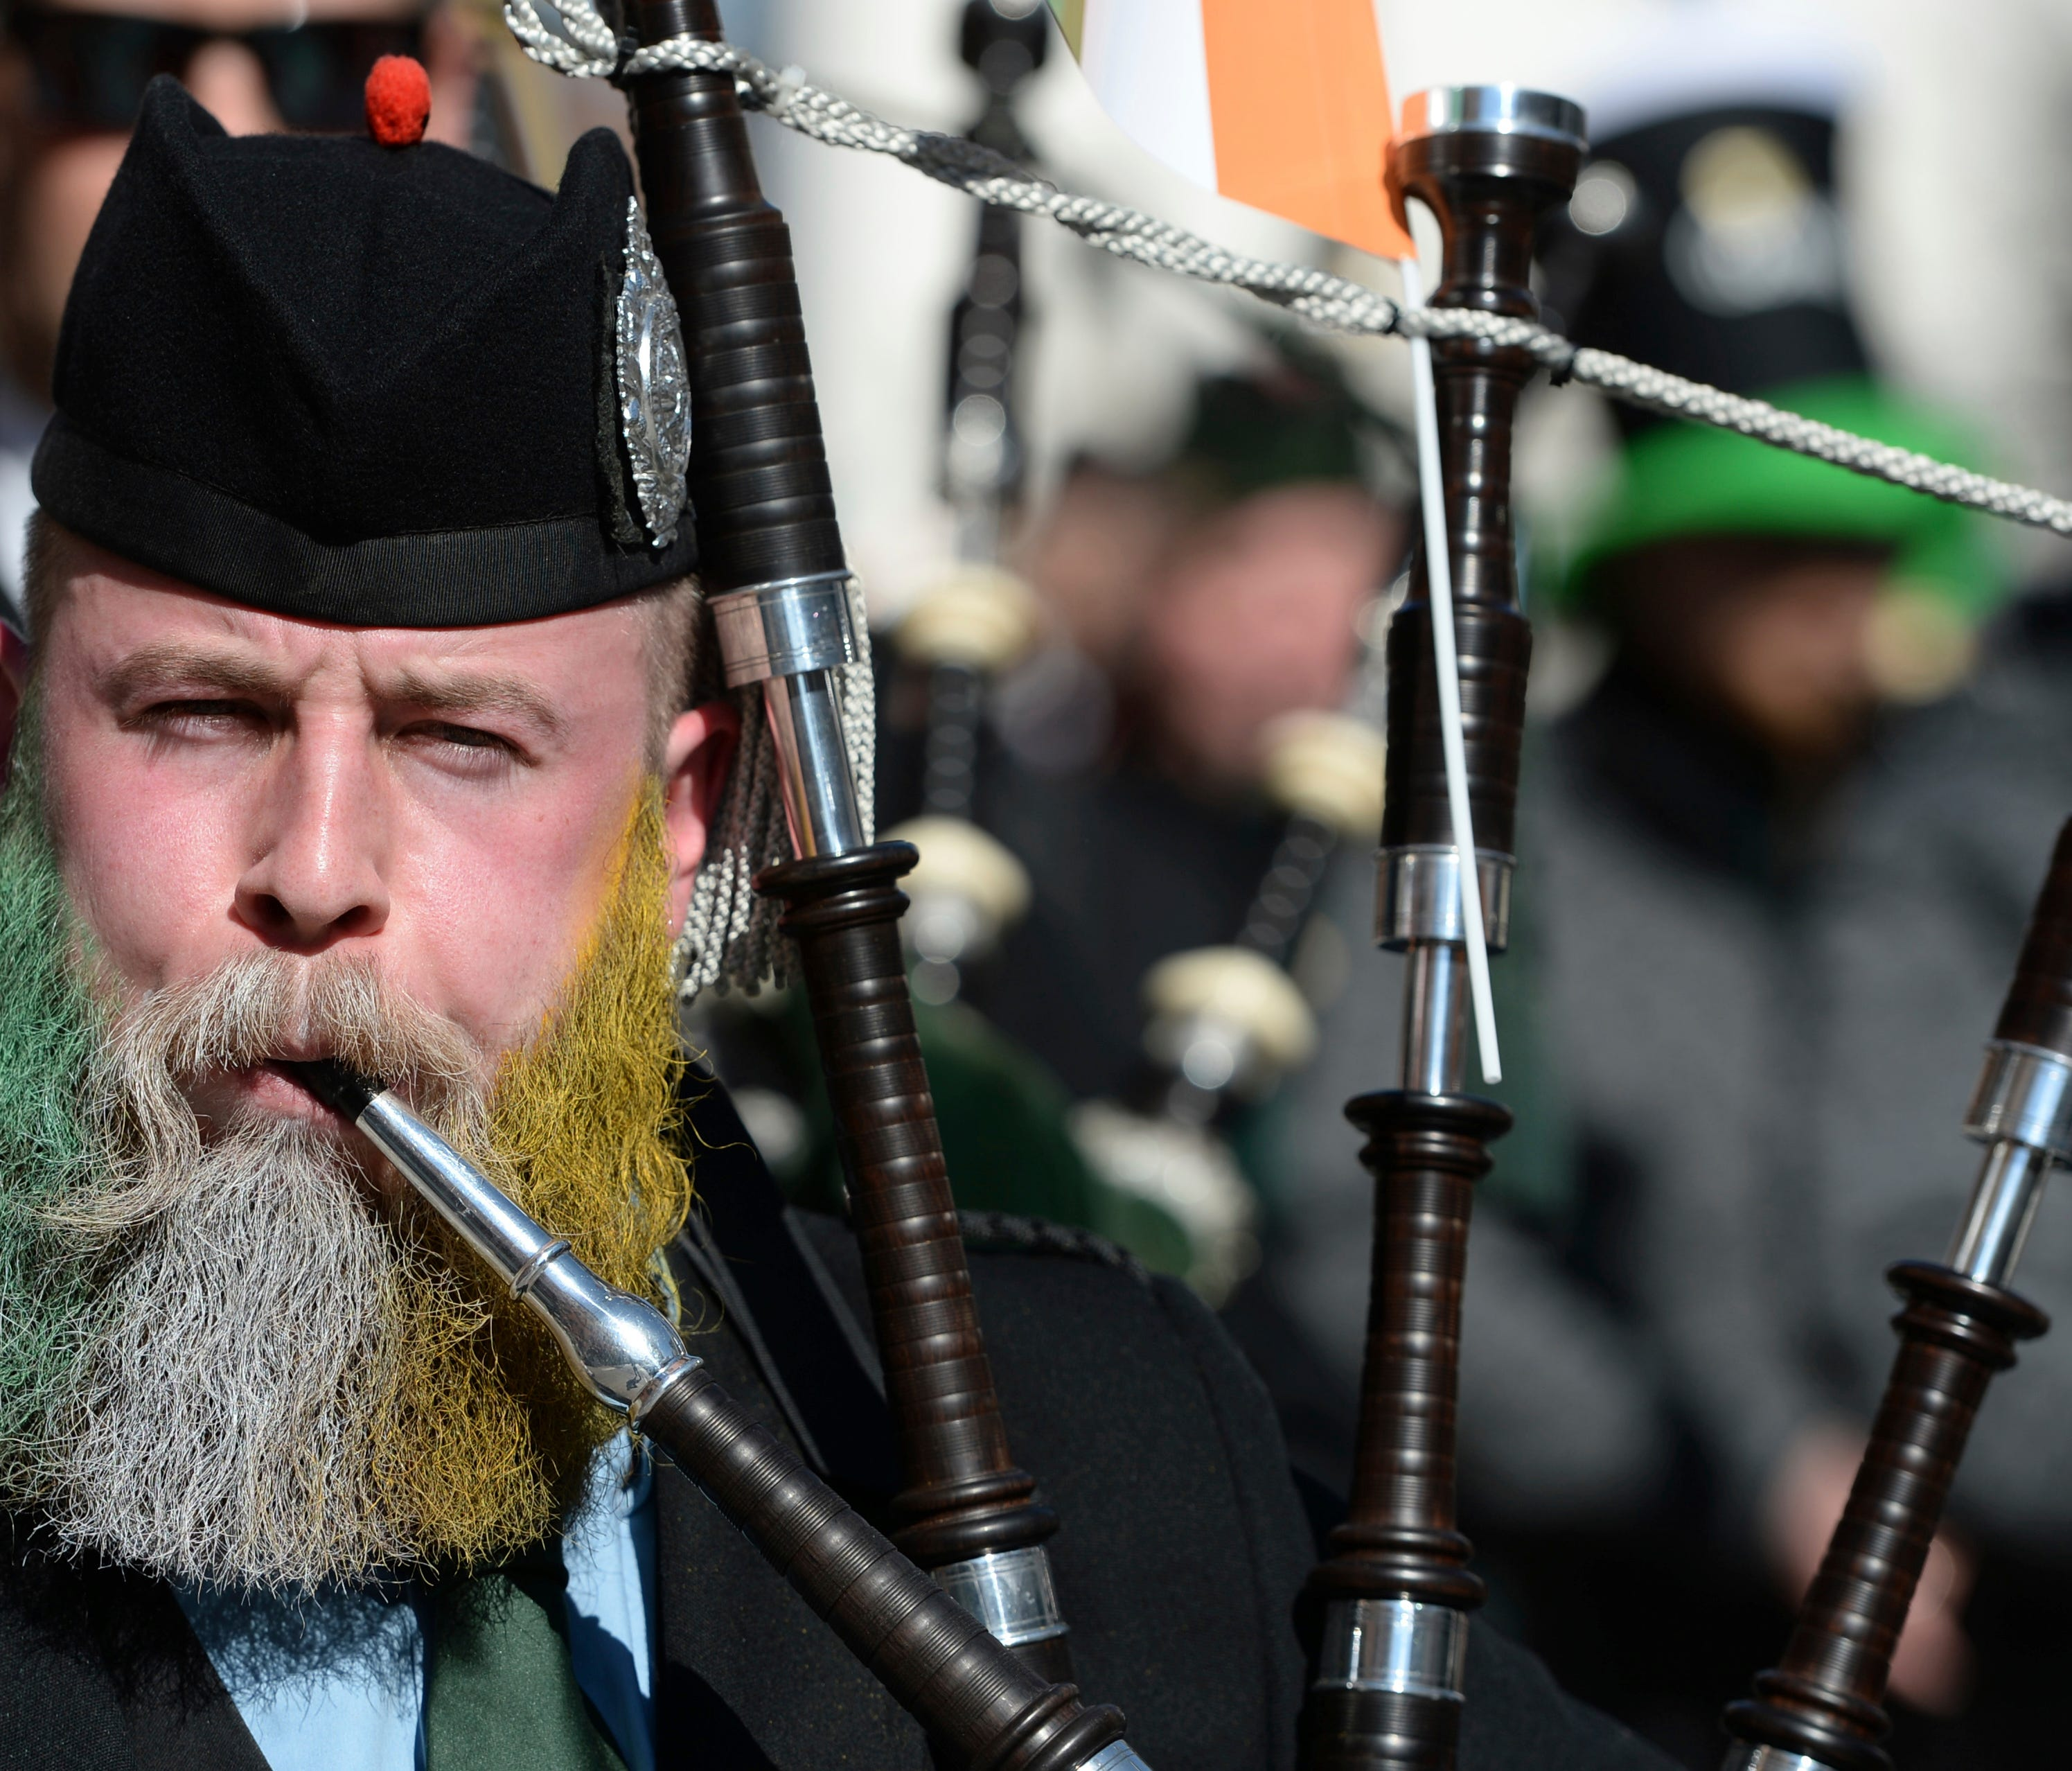 A bagpipe player, with a beard in the colors of the Irish national flag, plays during the St. Patrick's Day Parade in Munich, Germany on Sunday.